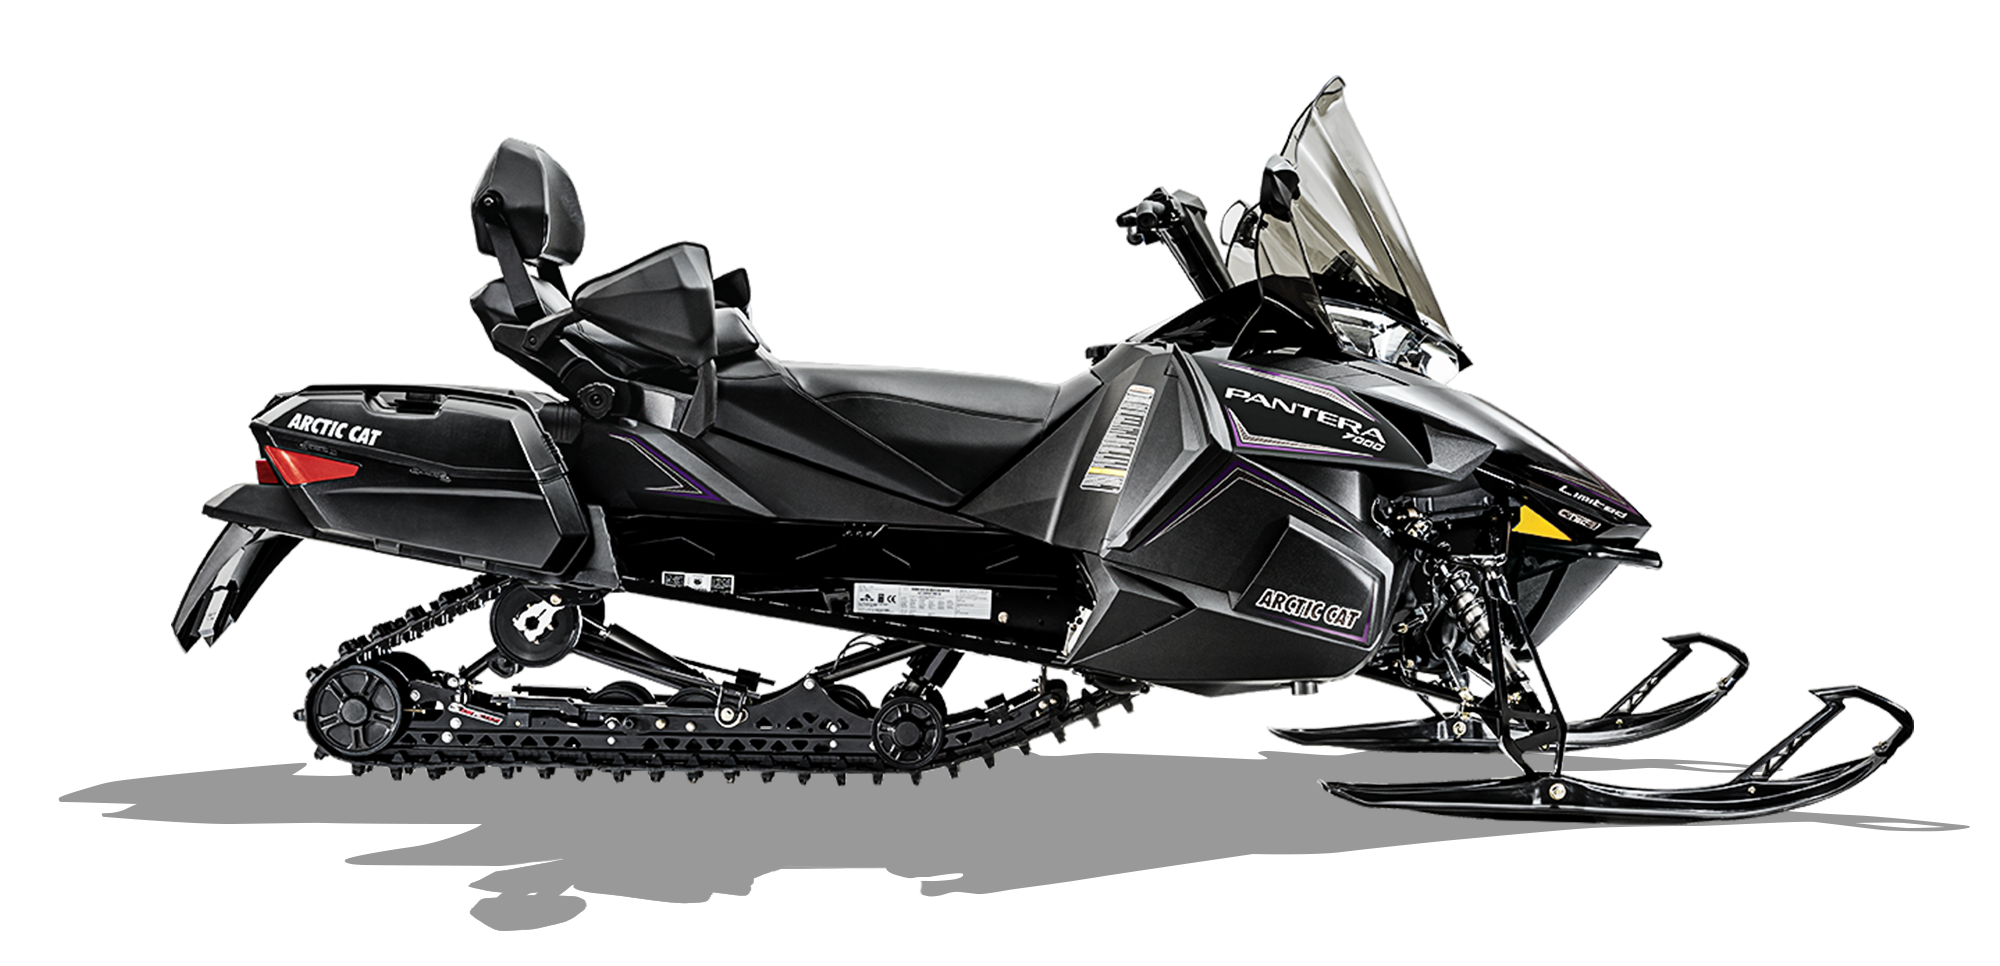 motos atv snowmobiles side by side and slingshot rental inventory Hilti DX 650 arctic catpantera 7000 limited 2017